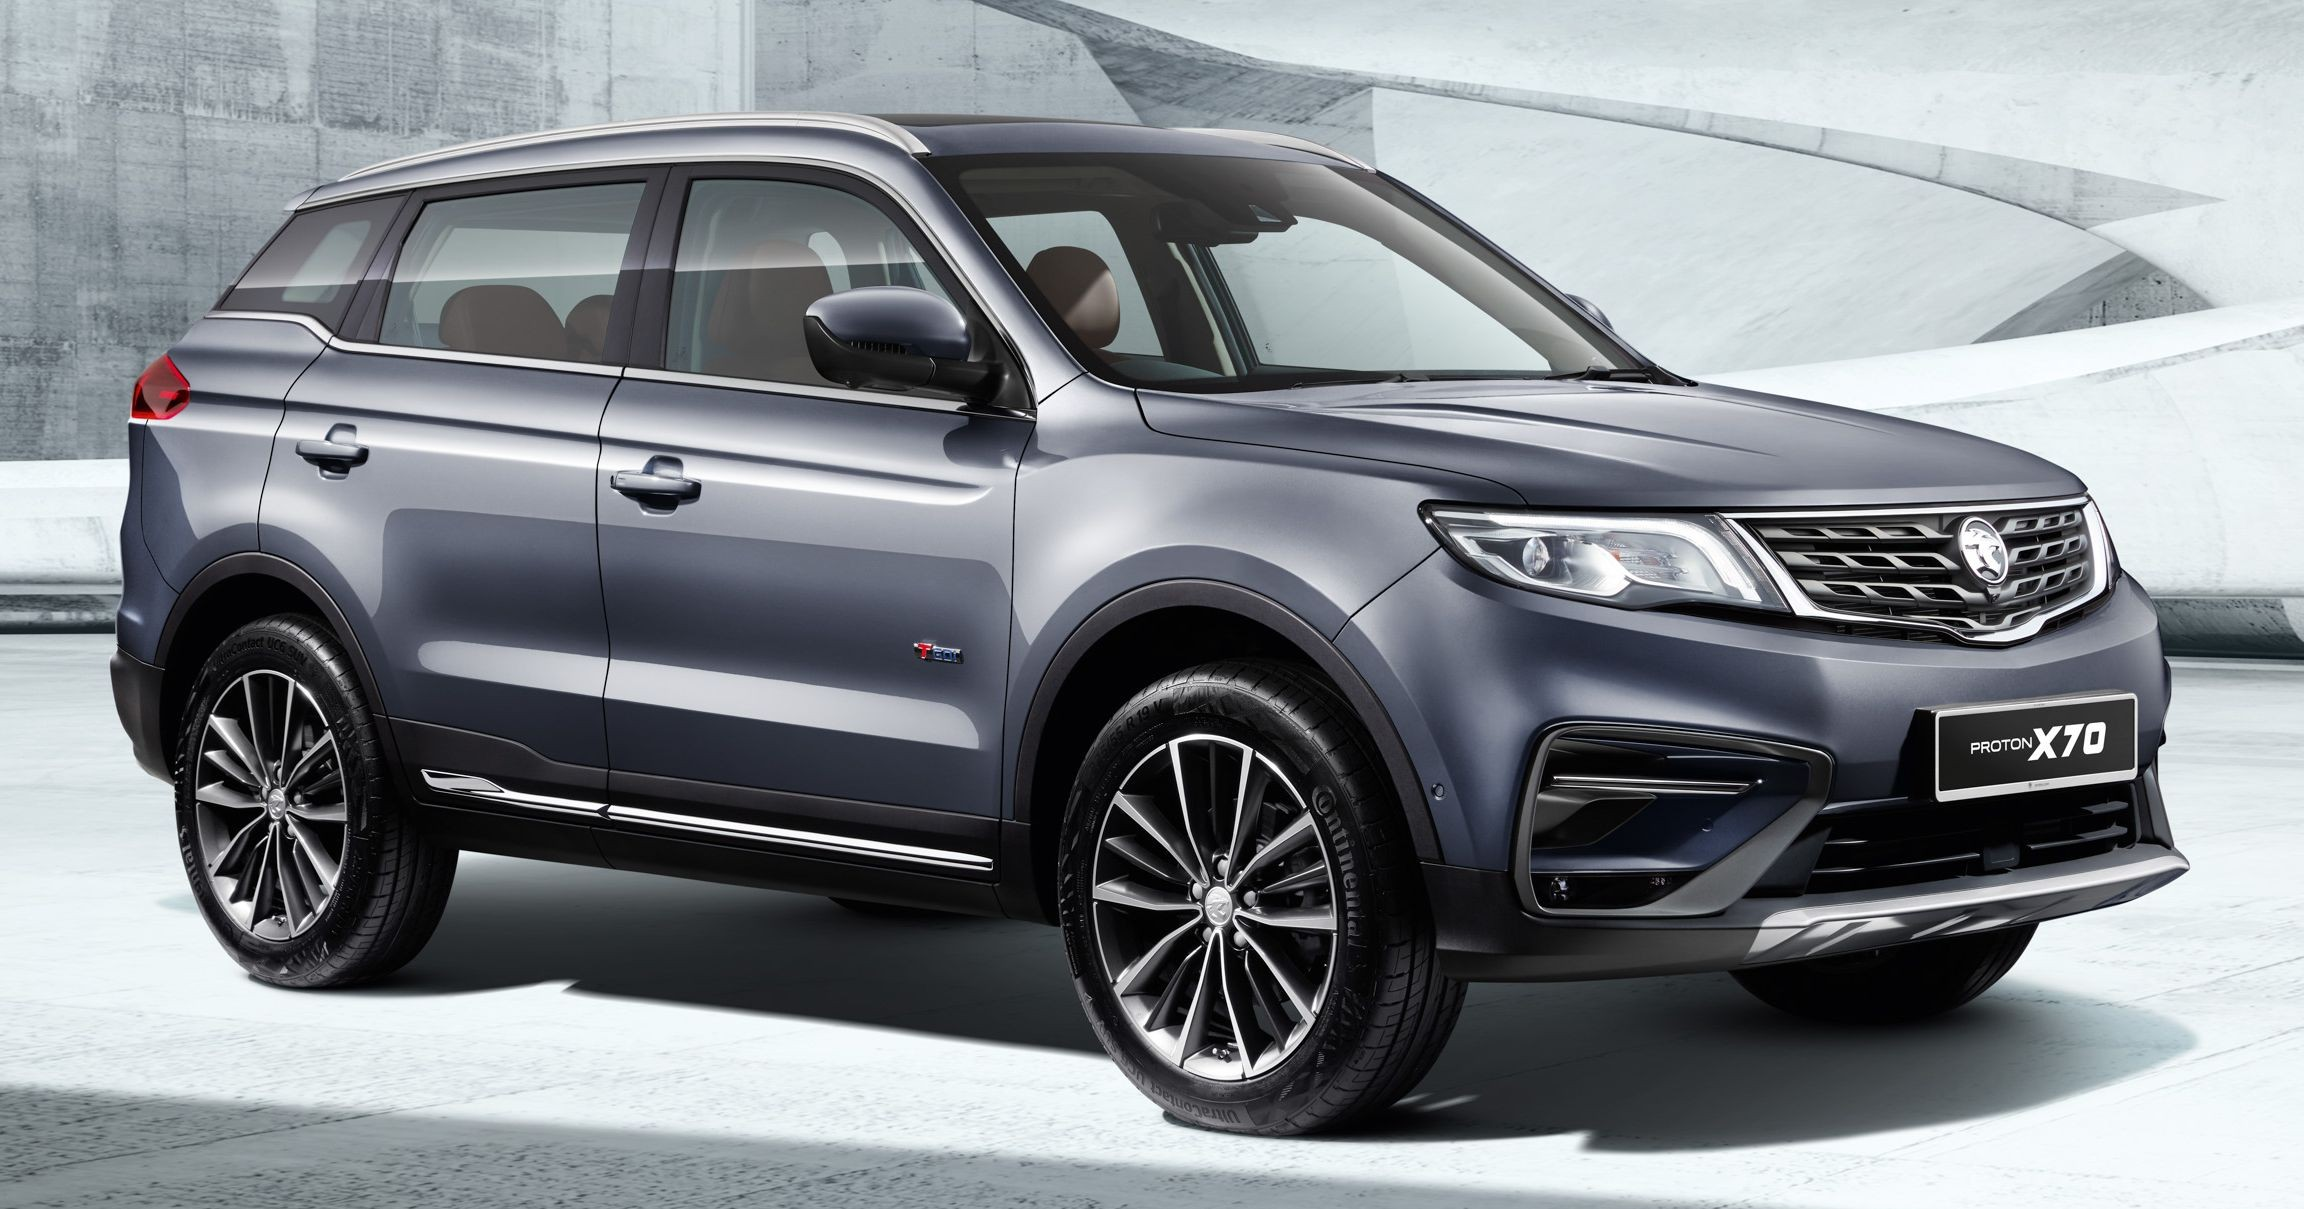 Is the Proton X70 still worth buying in 2021?